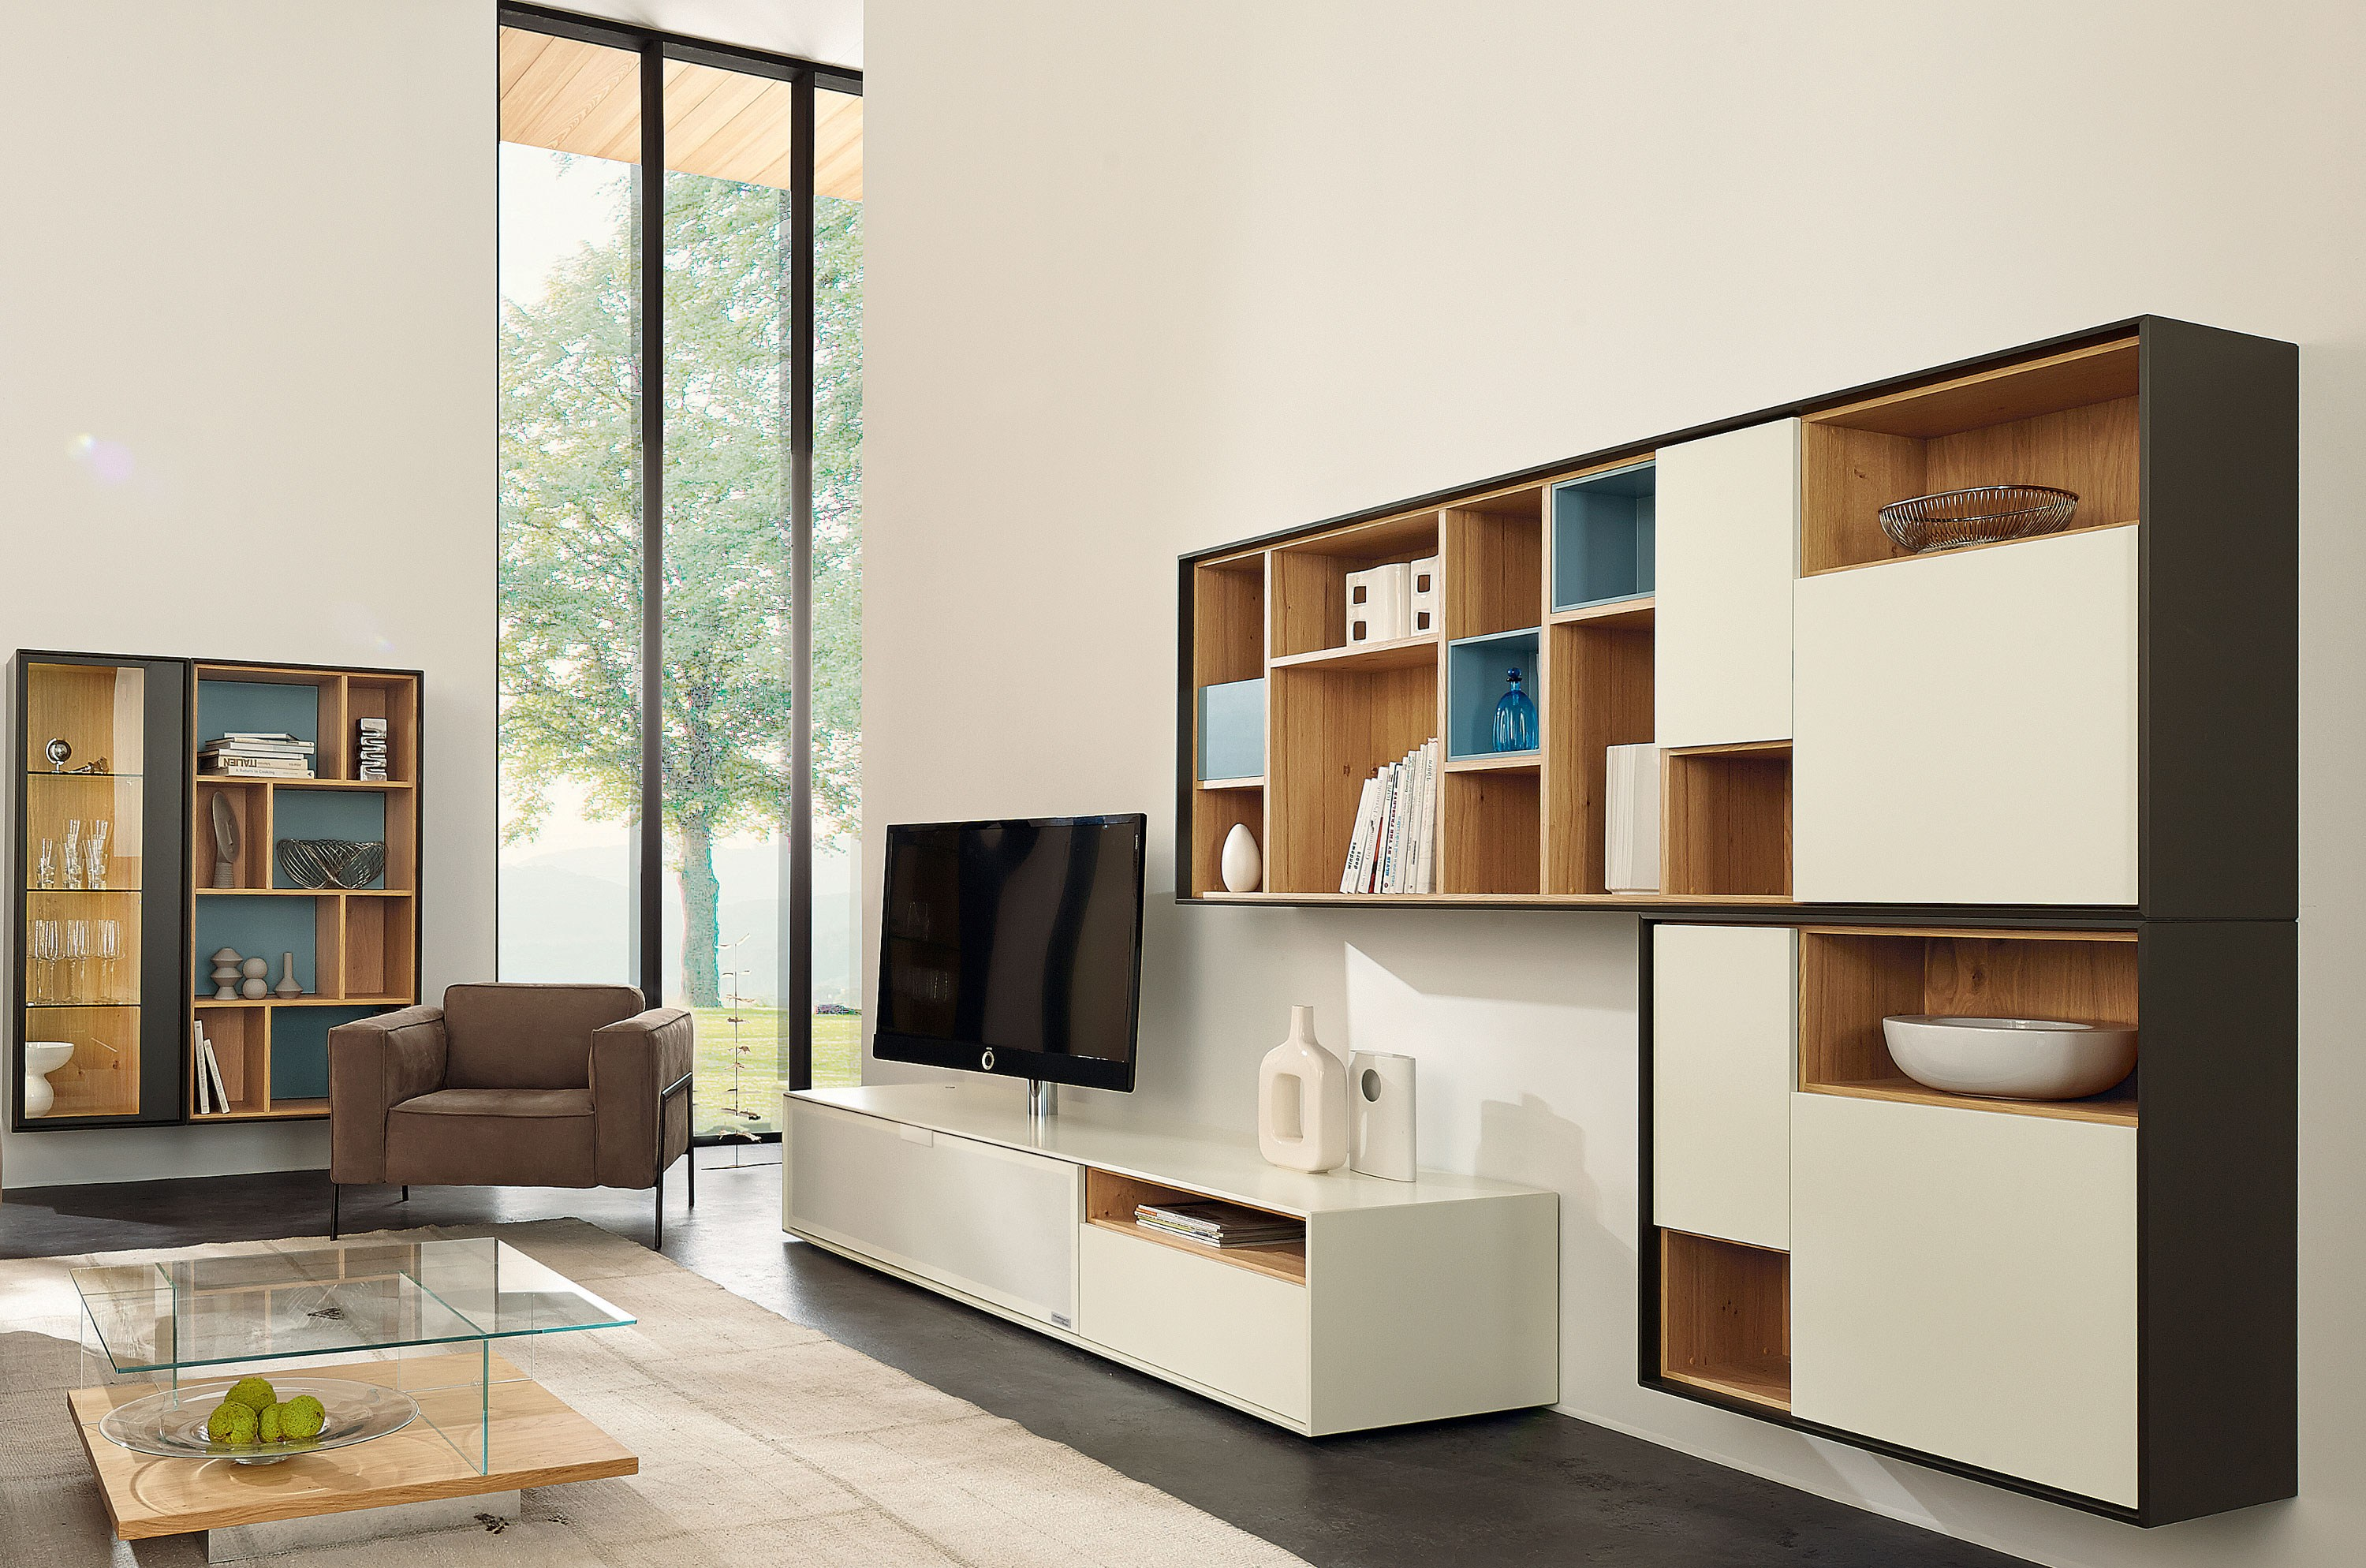 h lsta neo tv m bel interessante ideen f r die gestaltung eines raumes in ihrem hause. Black Bedroom Furniture Sets. Home Design Ideas